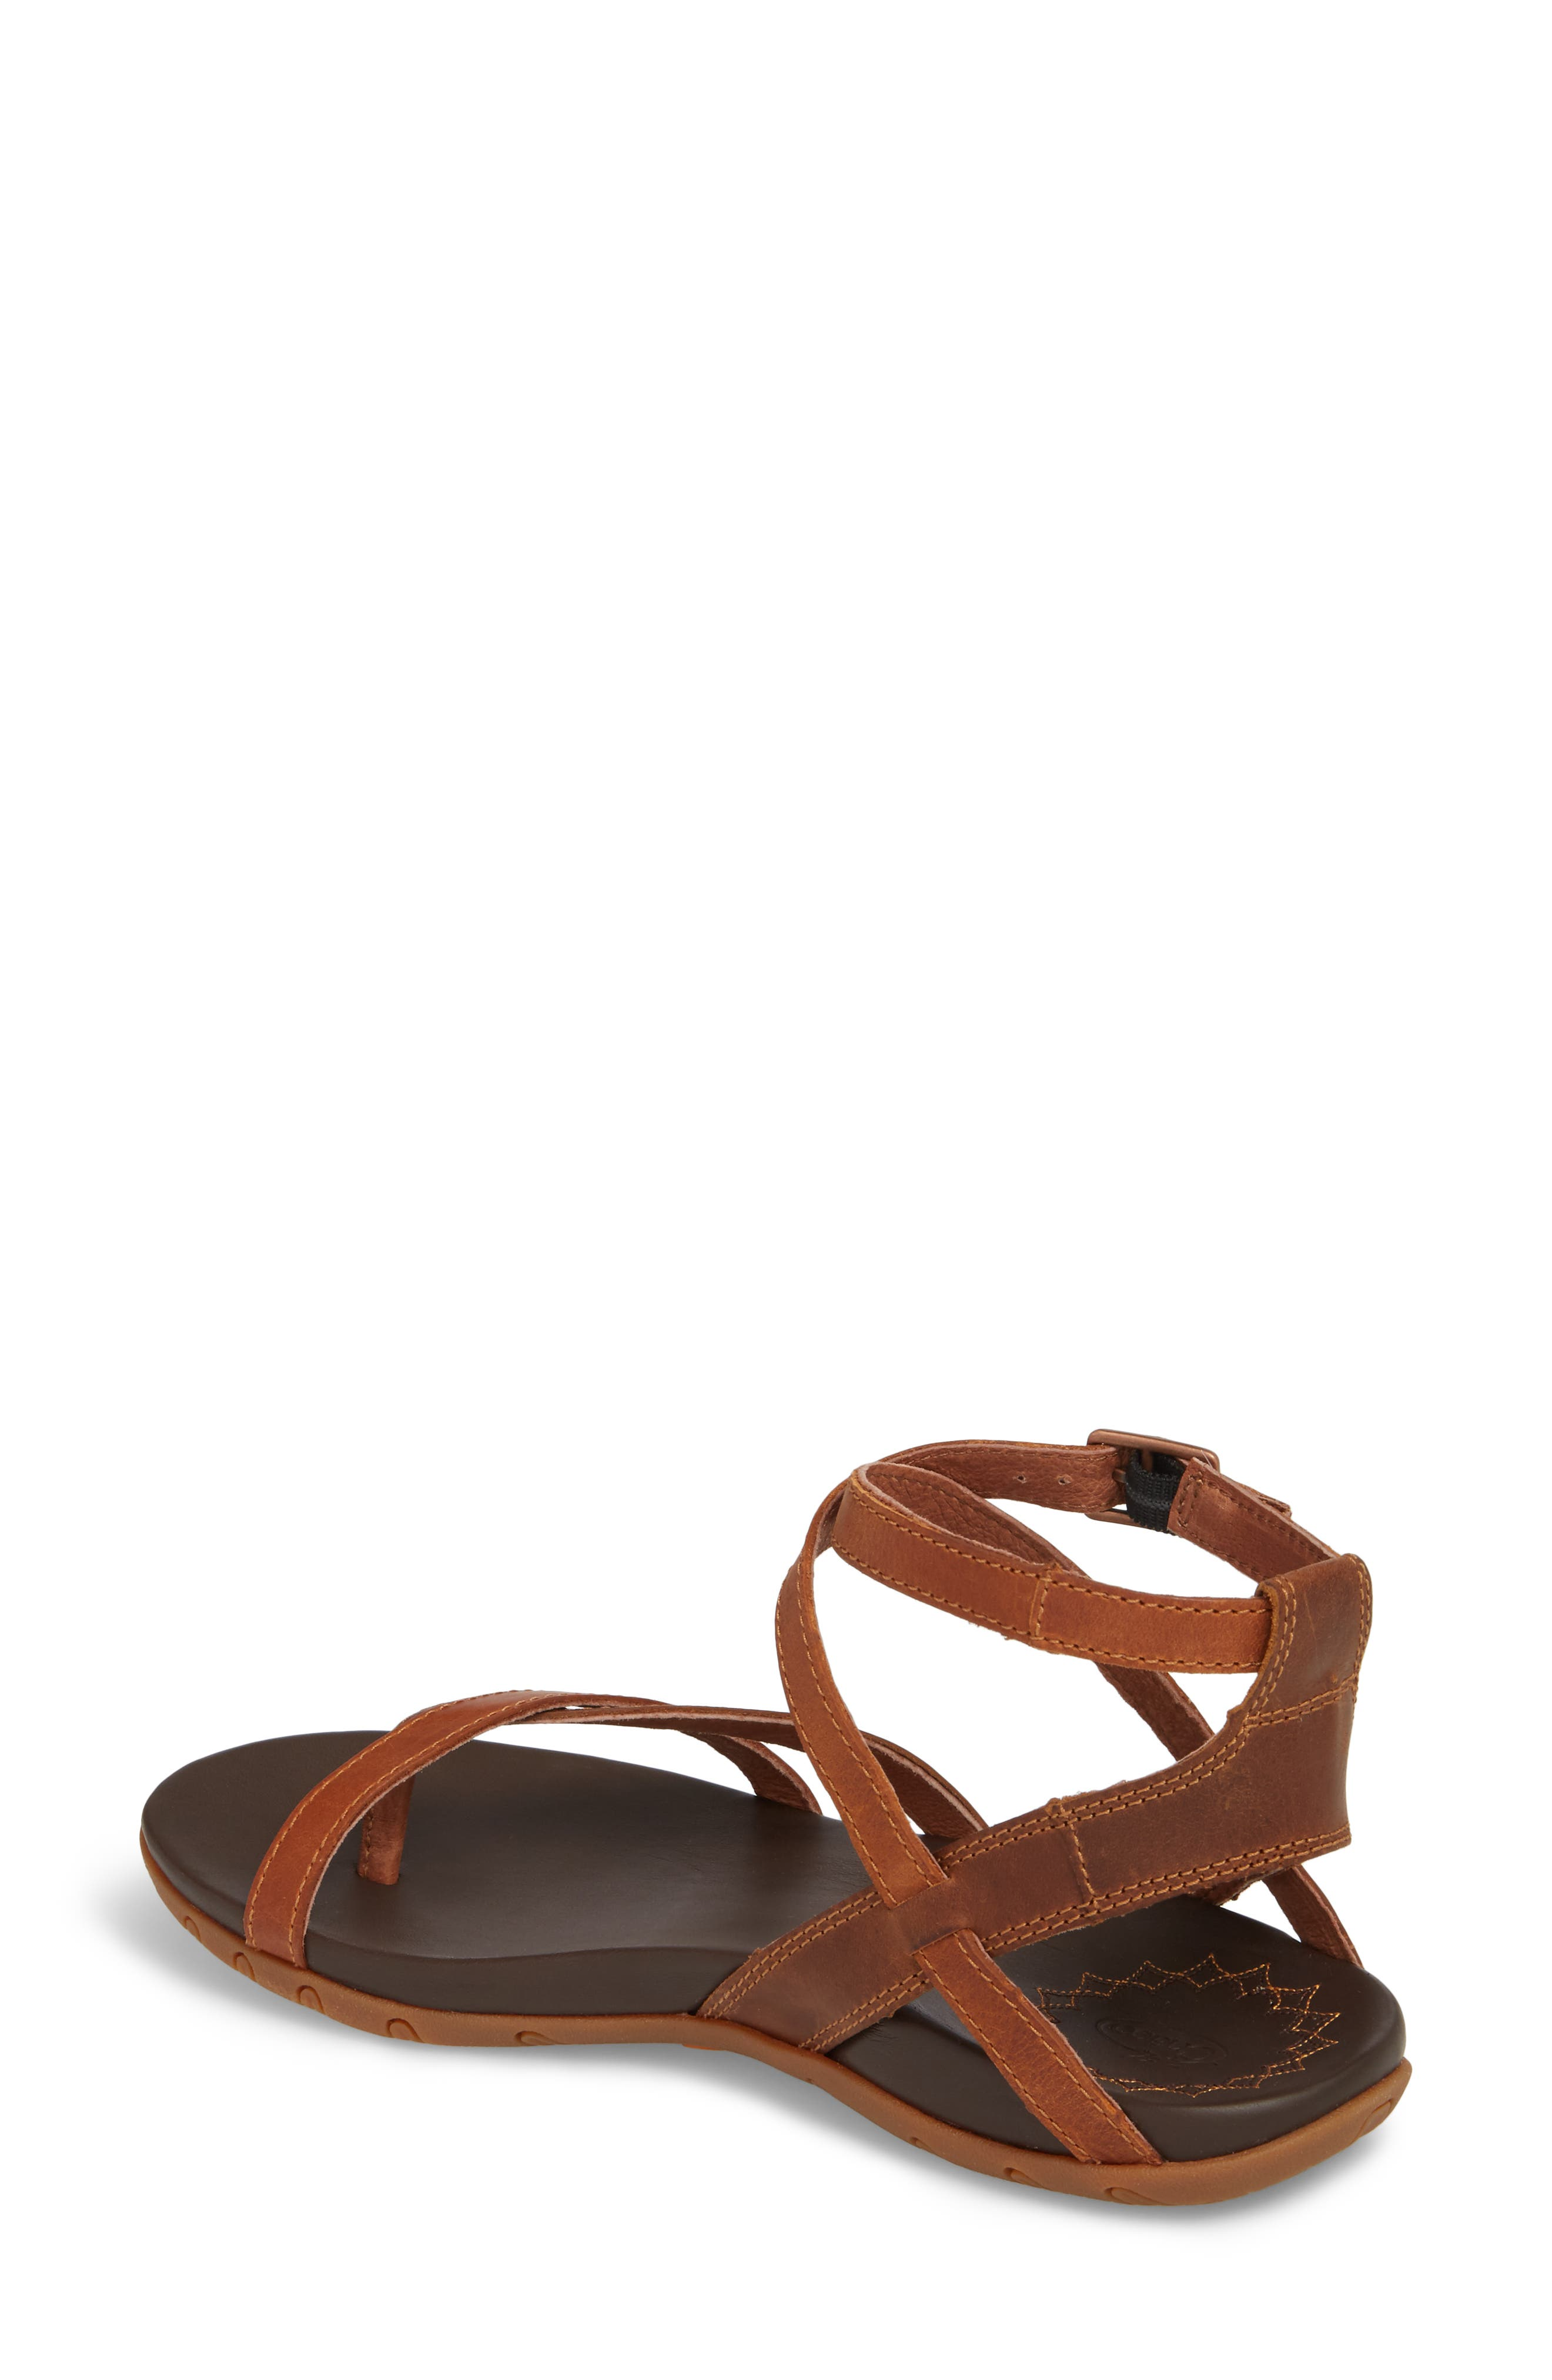 CHACO,                             Juniper Sandal,                             Alternate thumbnail 2, color,                             RUST LEATHER